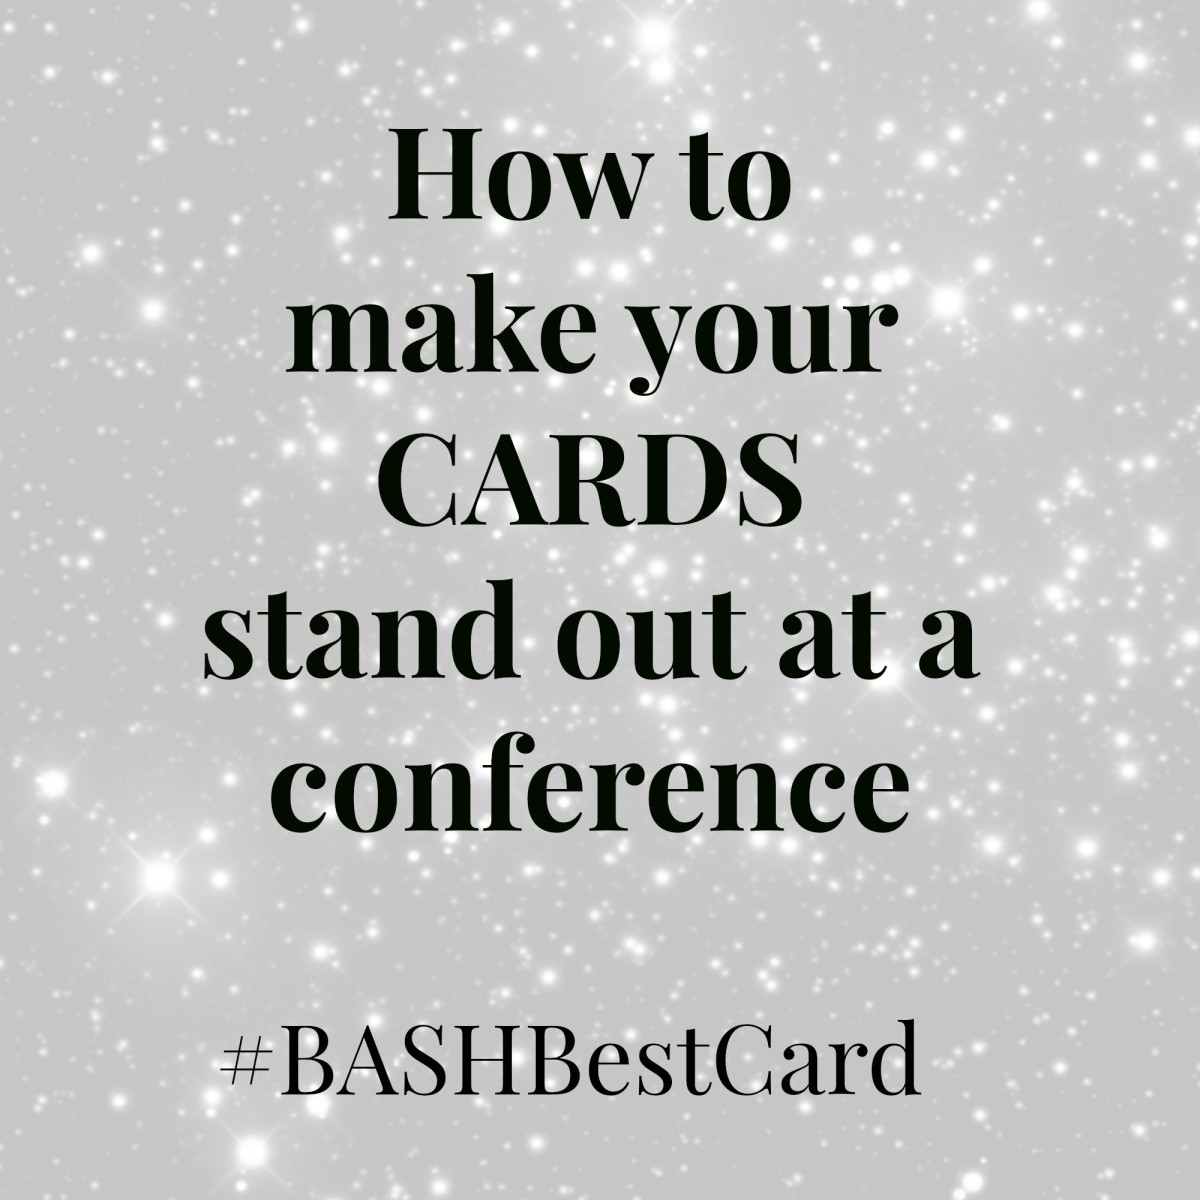 Bash Best Cards from shannonqualls.com